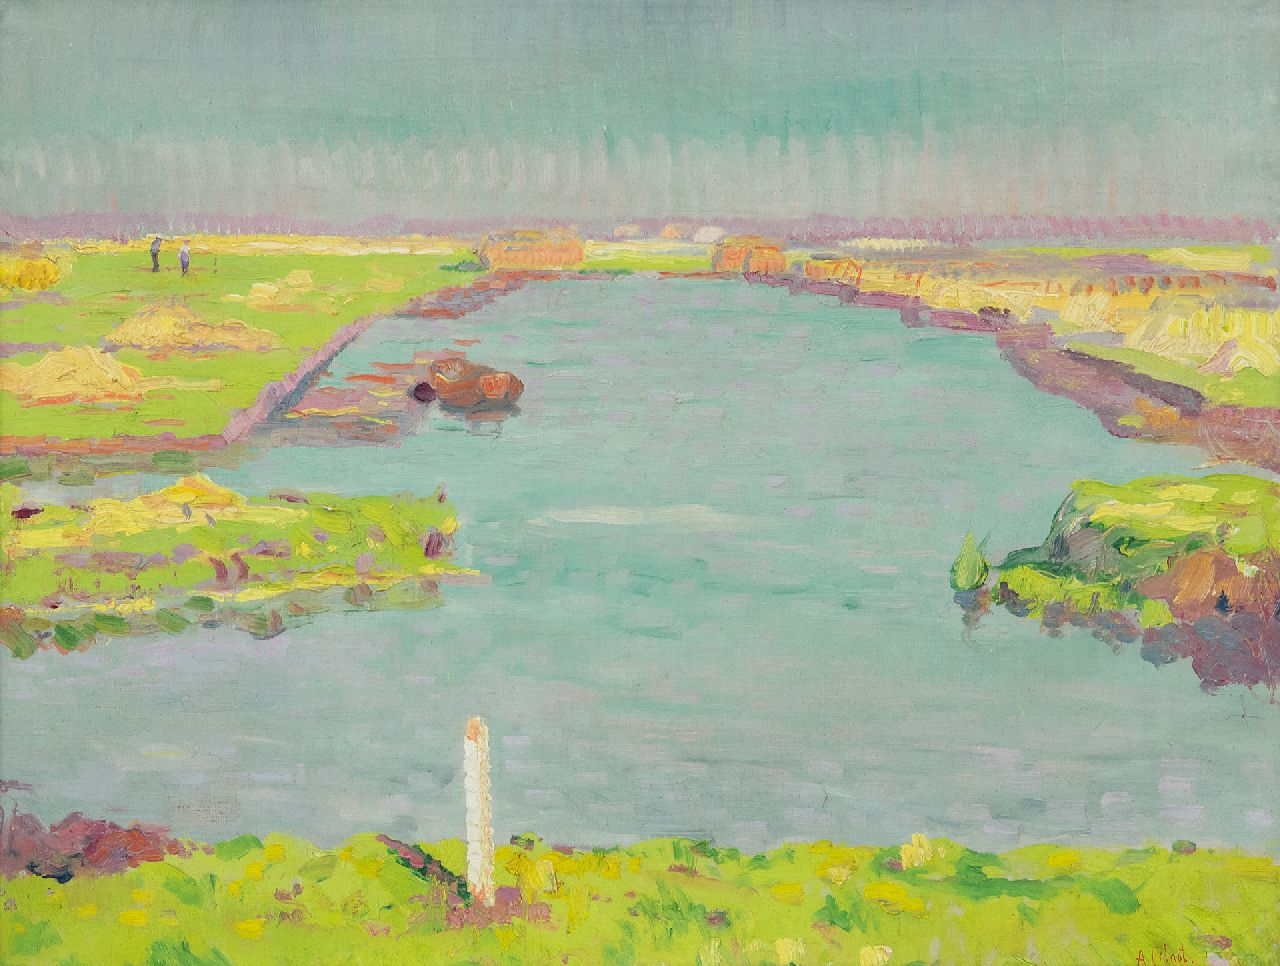 Colnot A.J.G.  | 'Arnout' Jacobus Gustaaf Colnot | Paintings offered for sale | A luministic polder landscape near Bergen, oil on canvas 49.6 x 62.9 cm, signed l.r. and painted ca. 1909